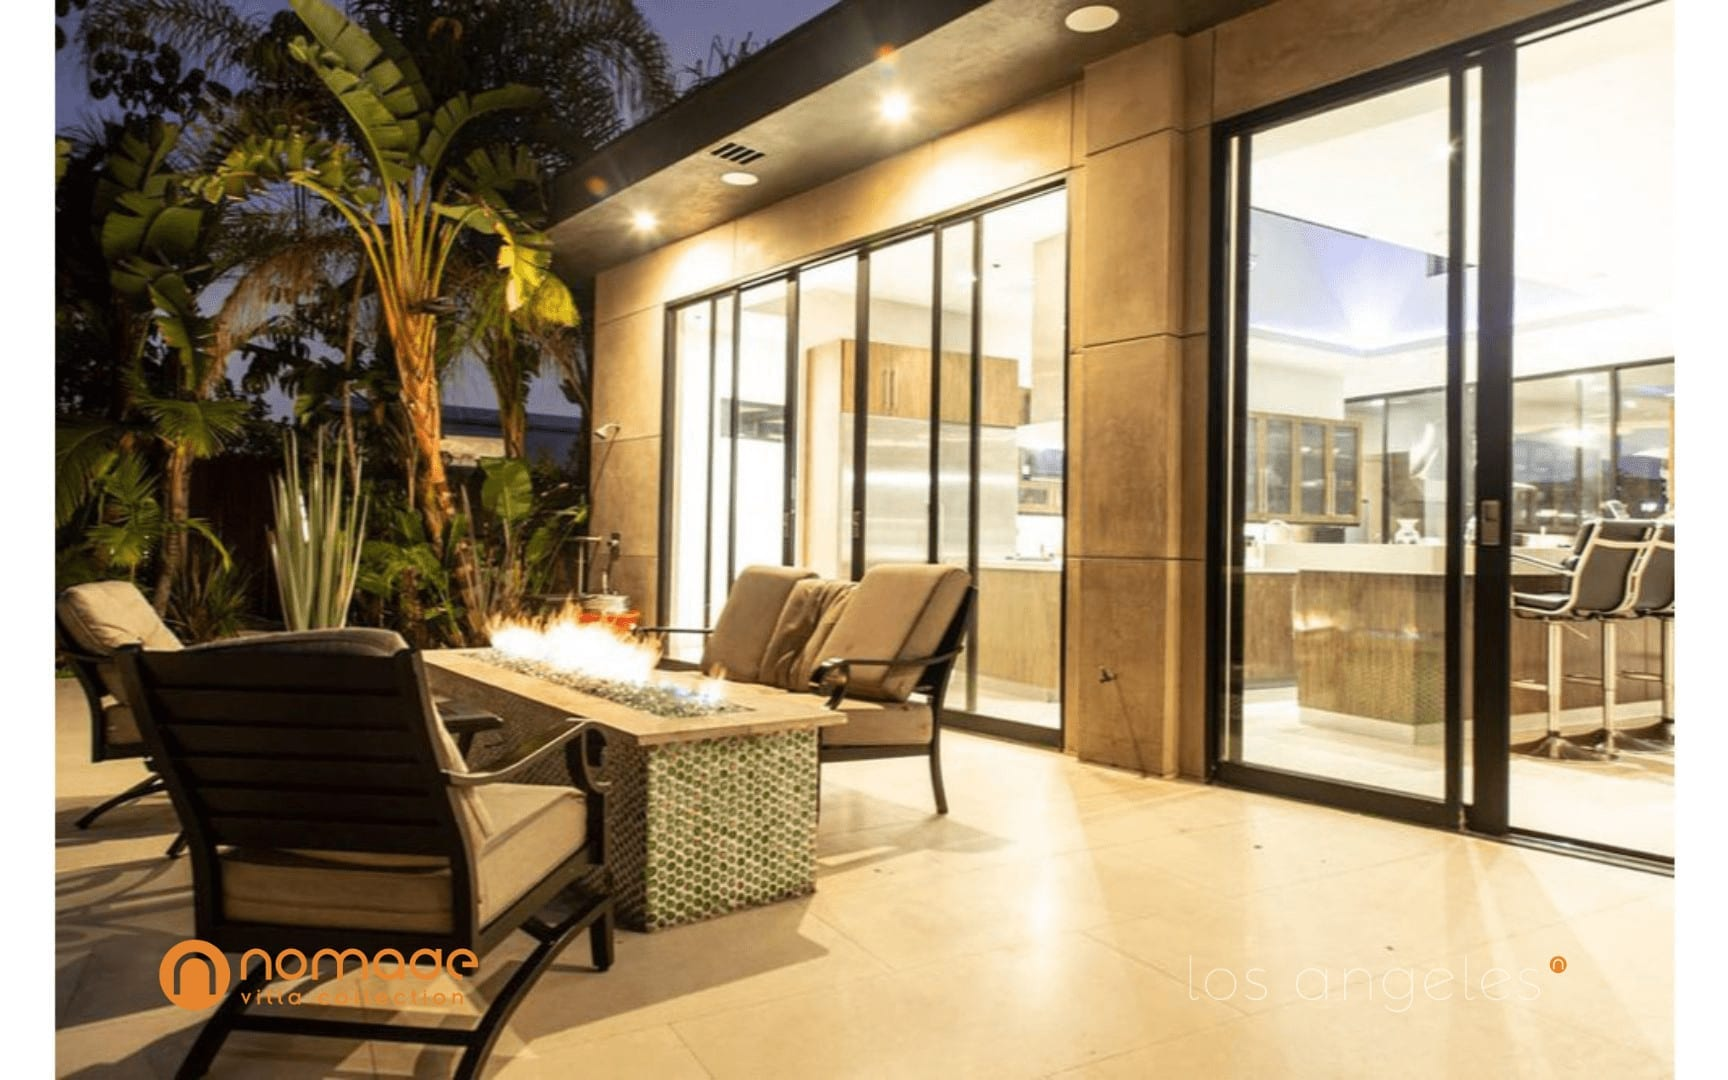 70-Legacy-oasis-outside-fire-pit